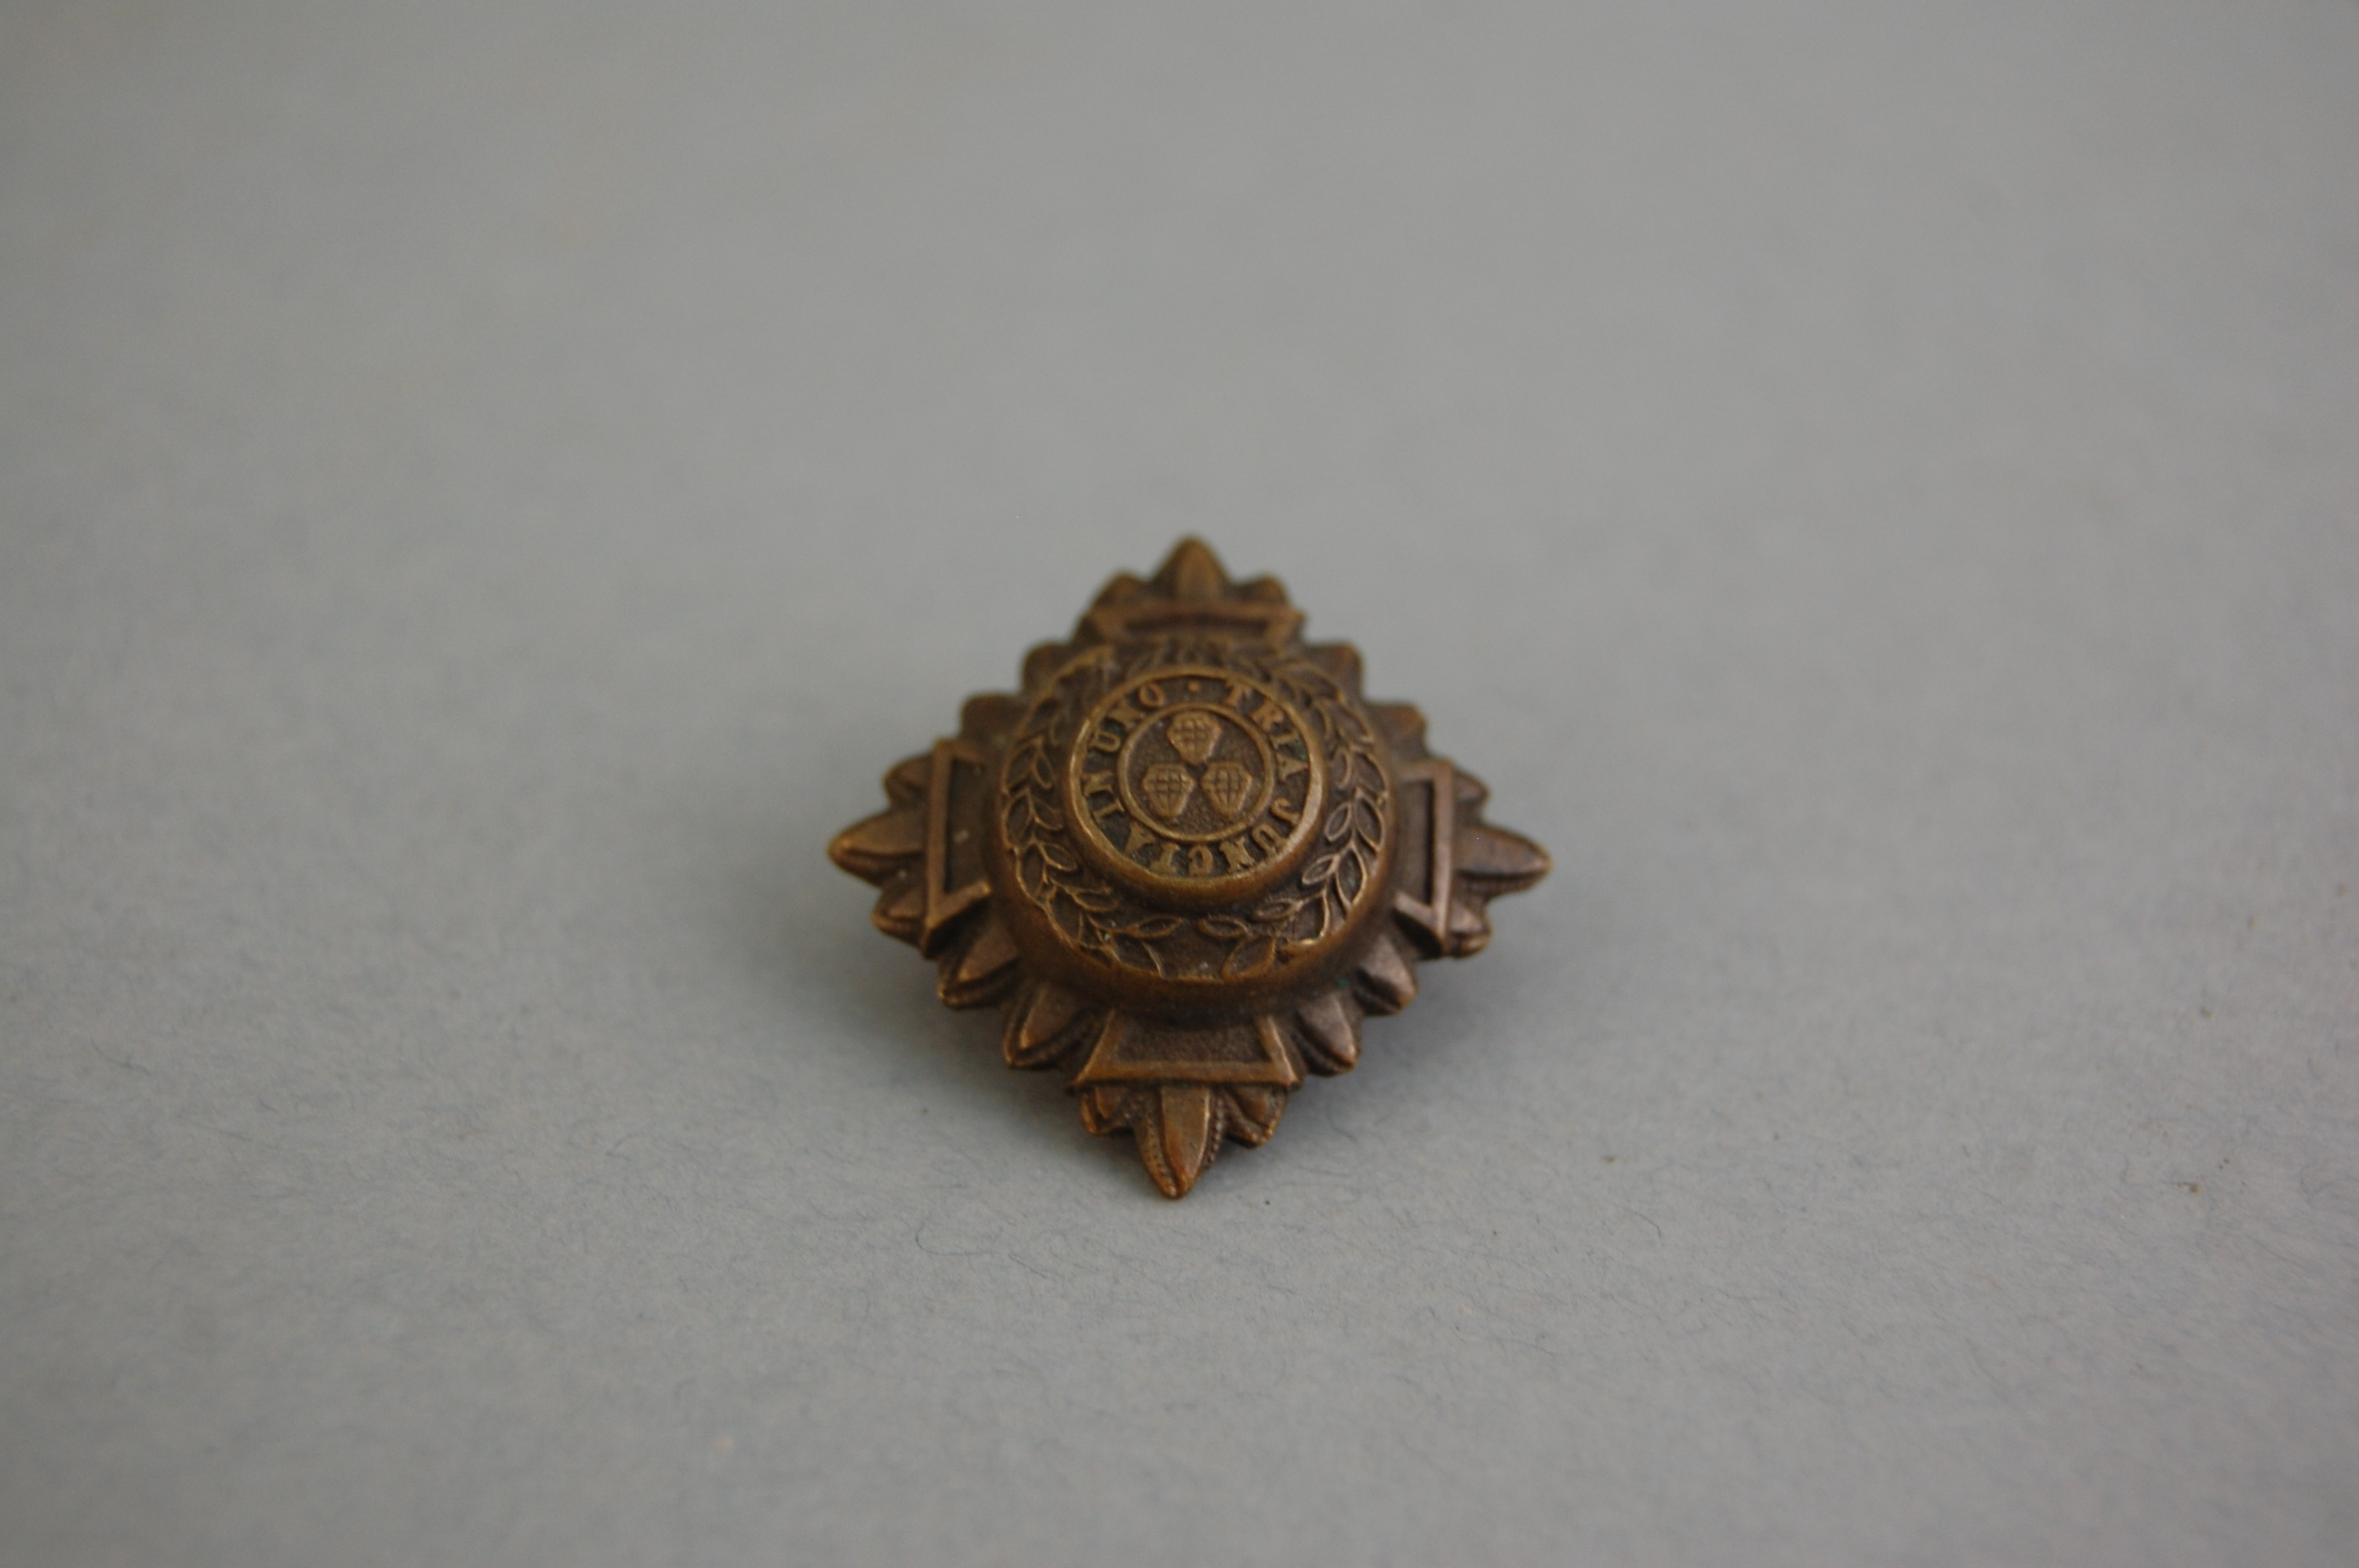 Officers 'pip'. A number of these worn on the shoulder of the uniform showed an officers rank.